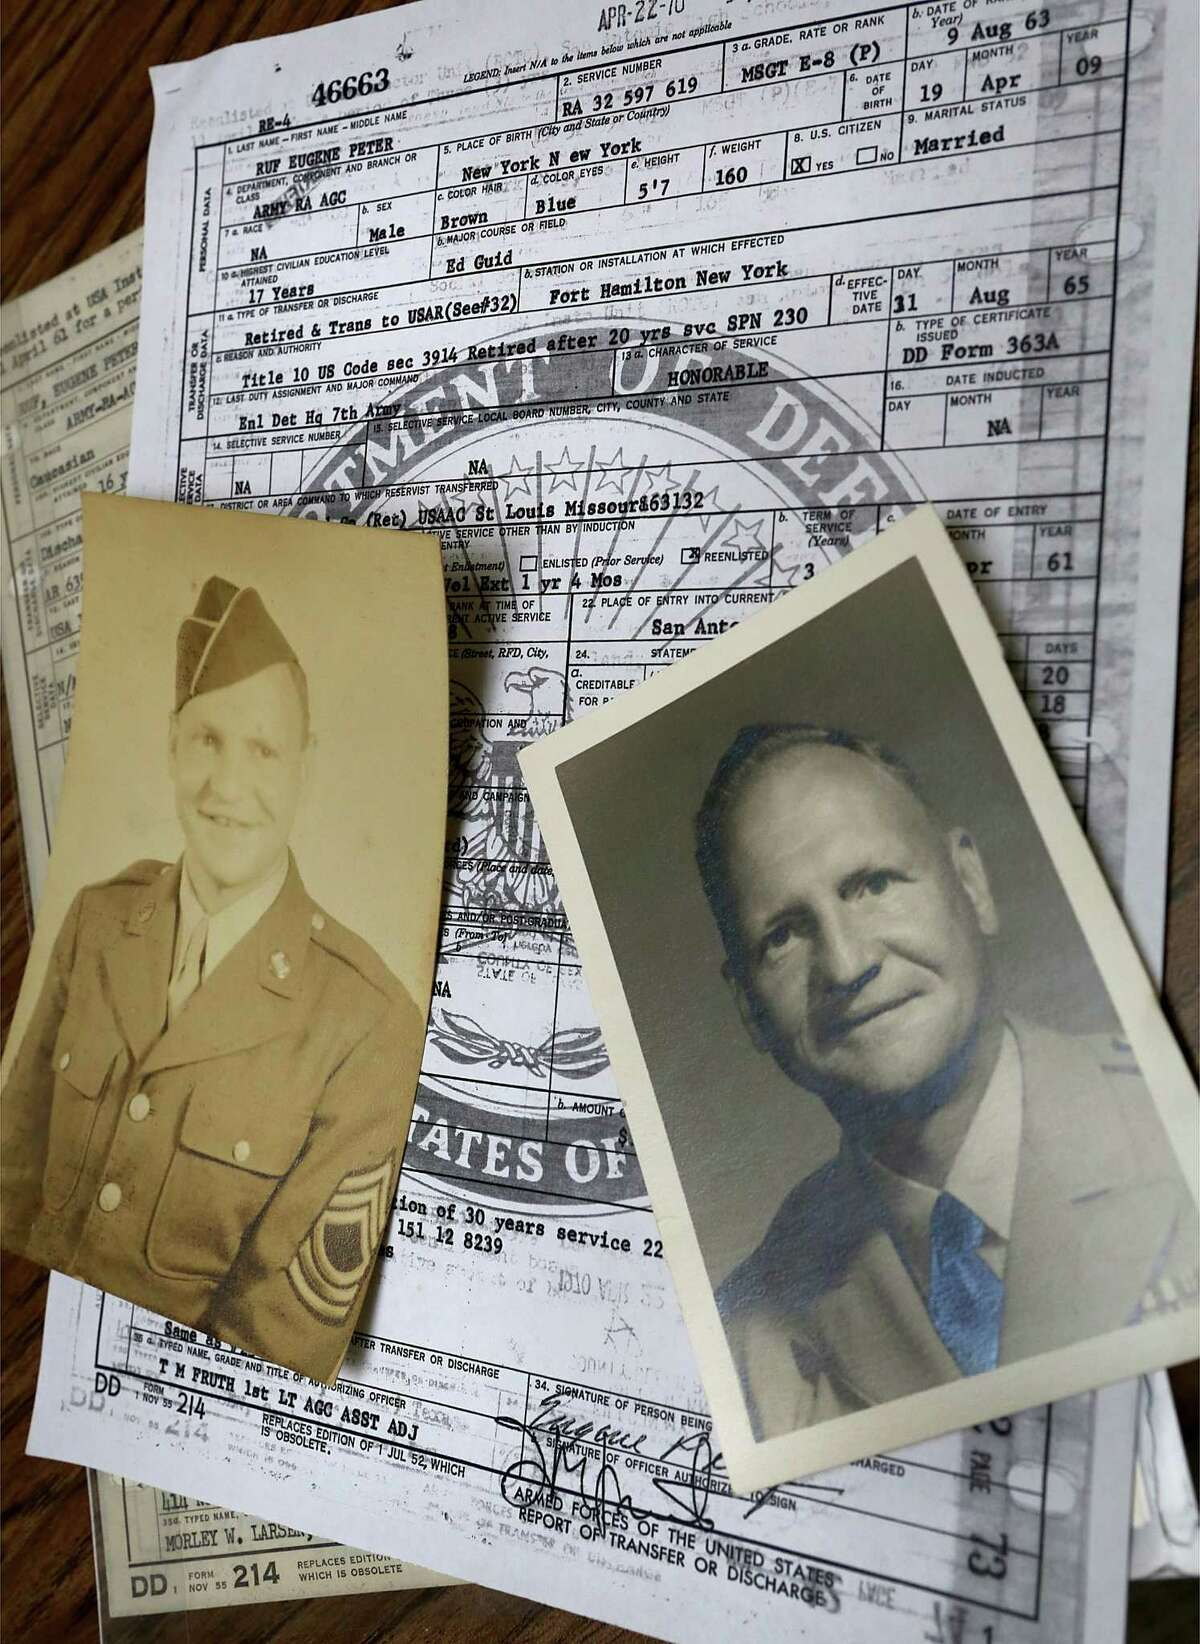 LEFT: Old photos and military discharge papers of Eugene Ruf, a veteran of World War II, who celebrated his 108th birthday on Wednesday, April 19, 2017, at Brookdale Senior Living Solutions with family and friends.